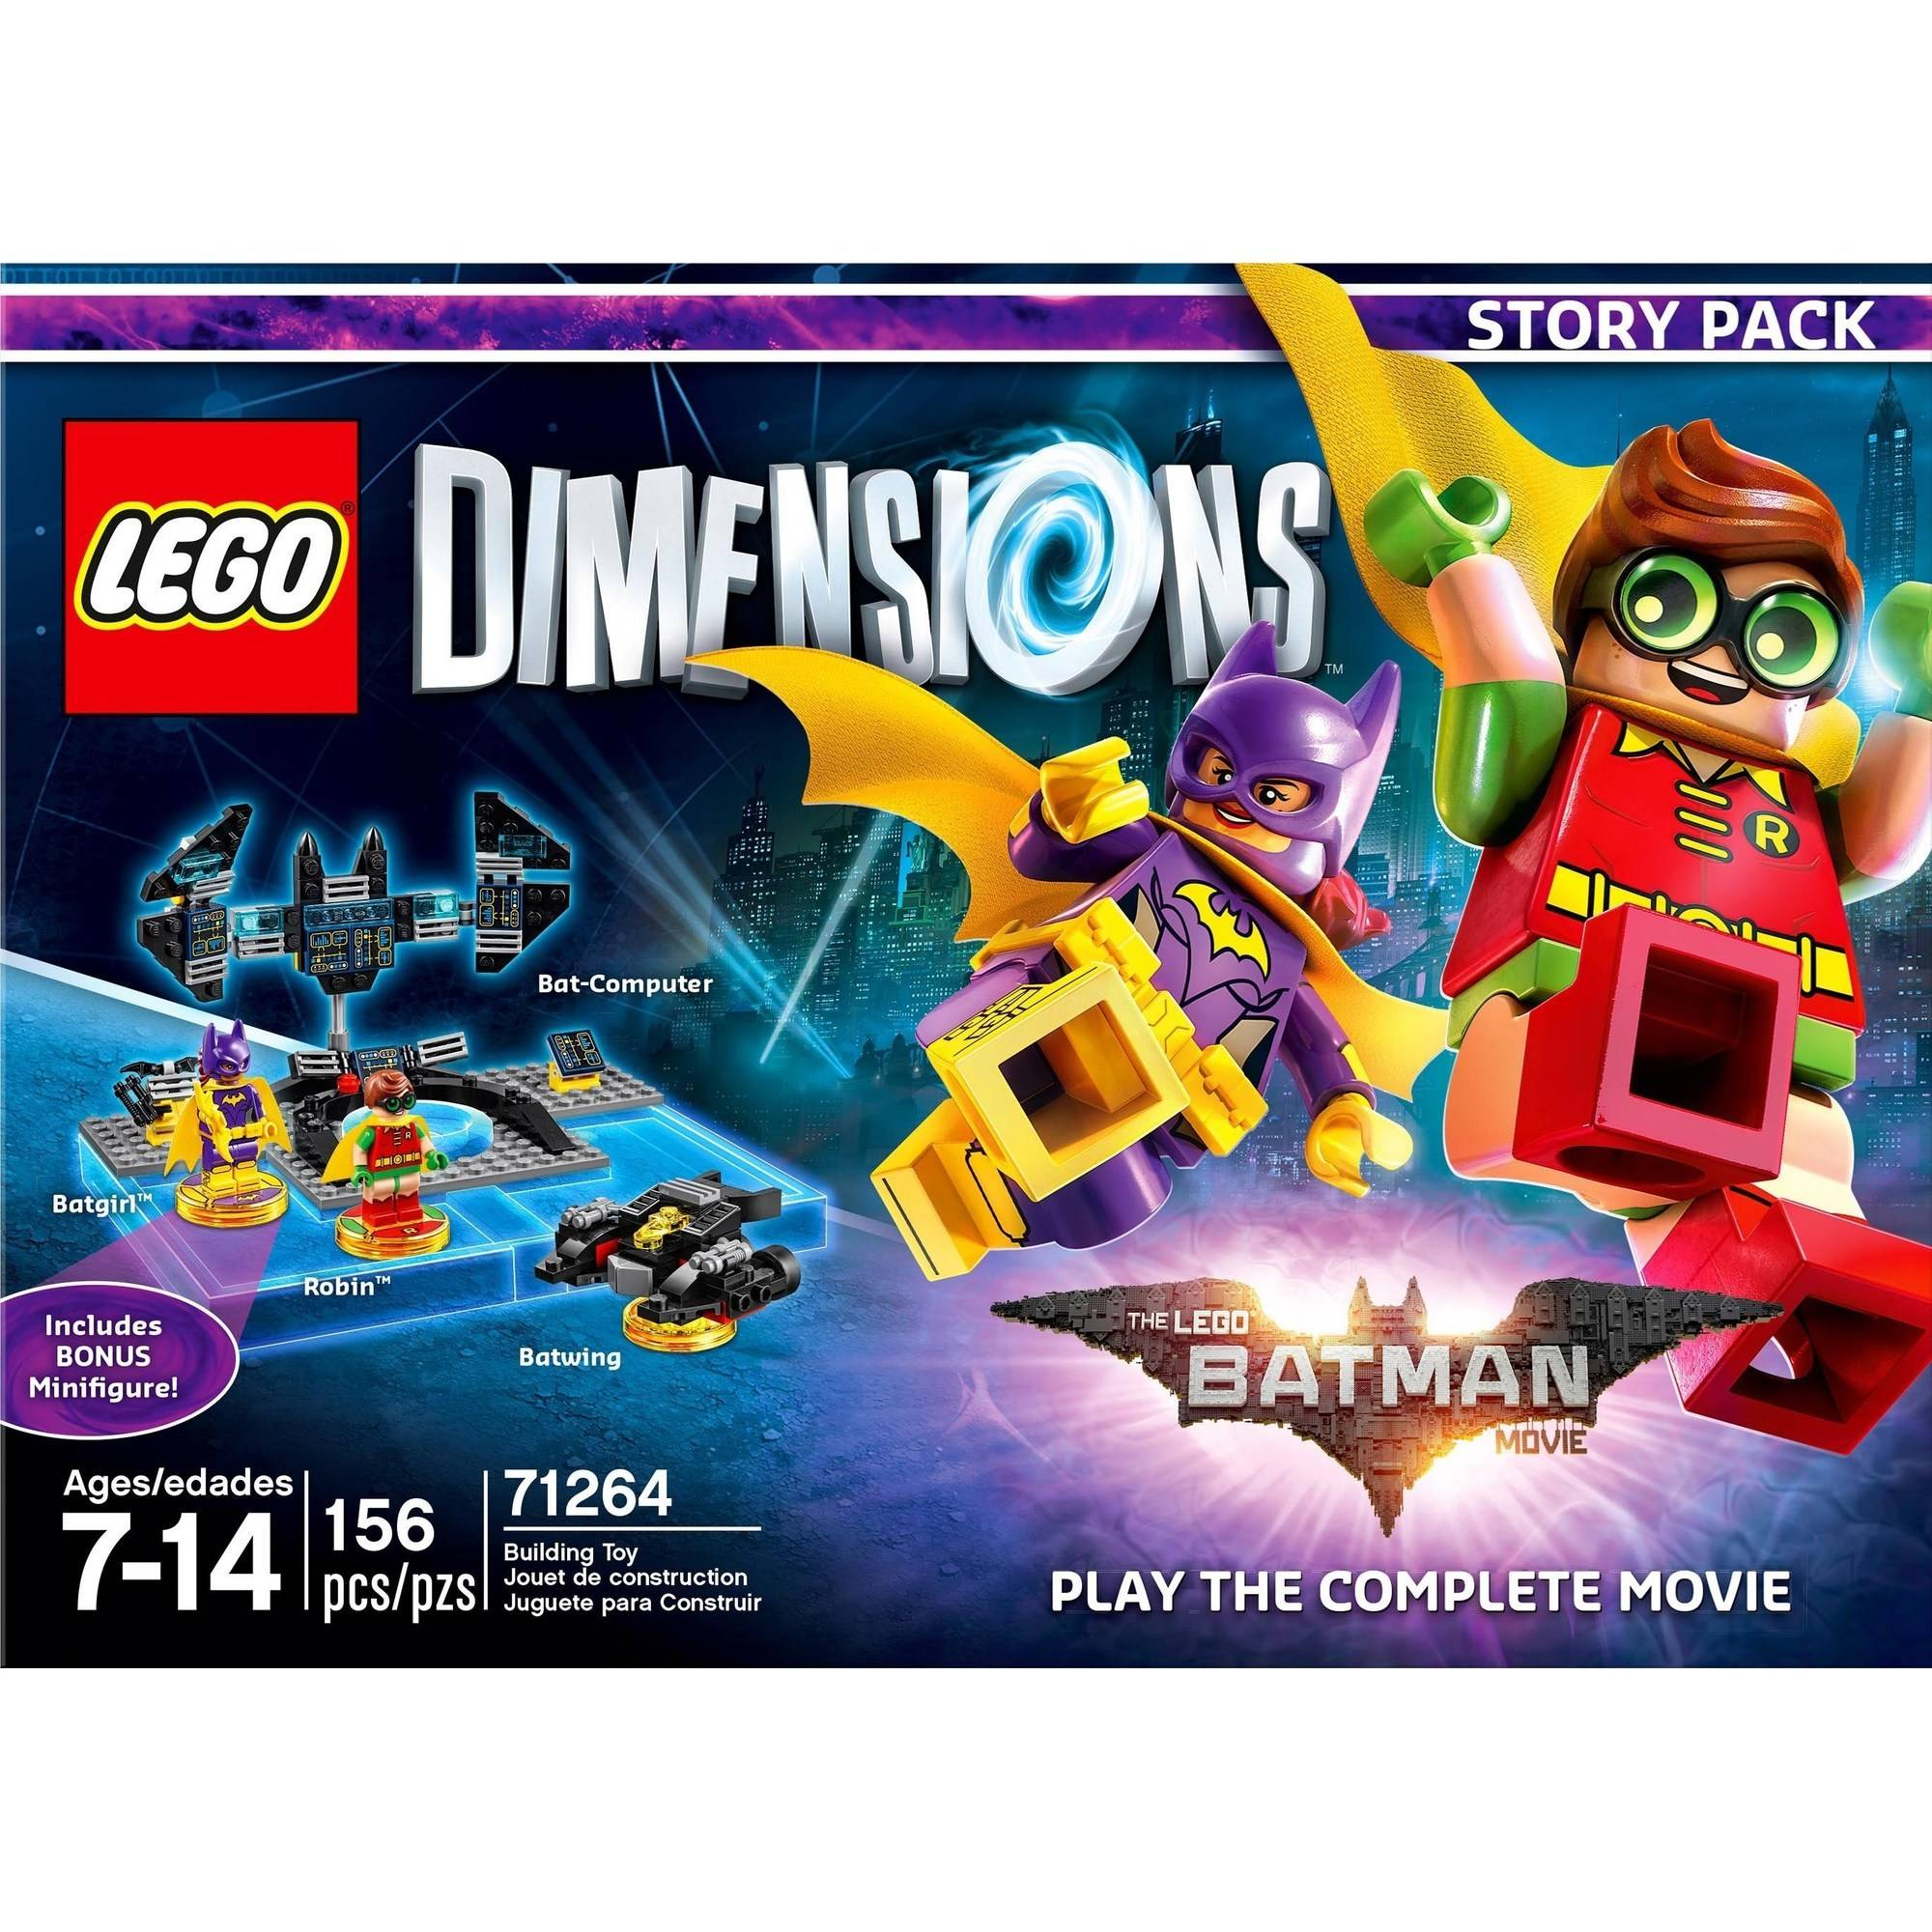 Lego Dimensions: Story Pack The Lego Batman Movie by WARNER HOME VIDEO GAMES